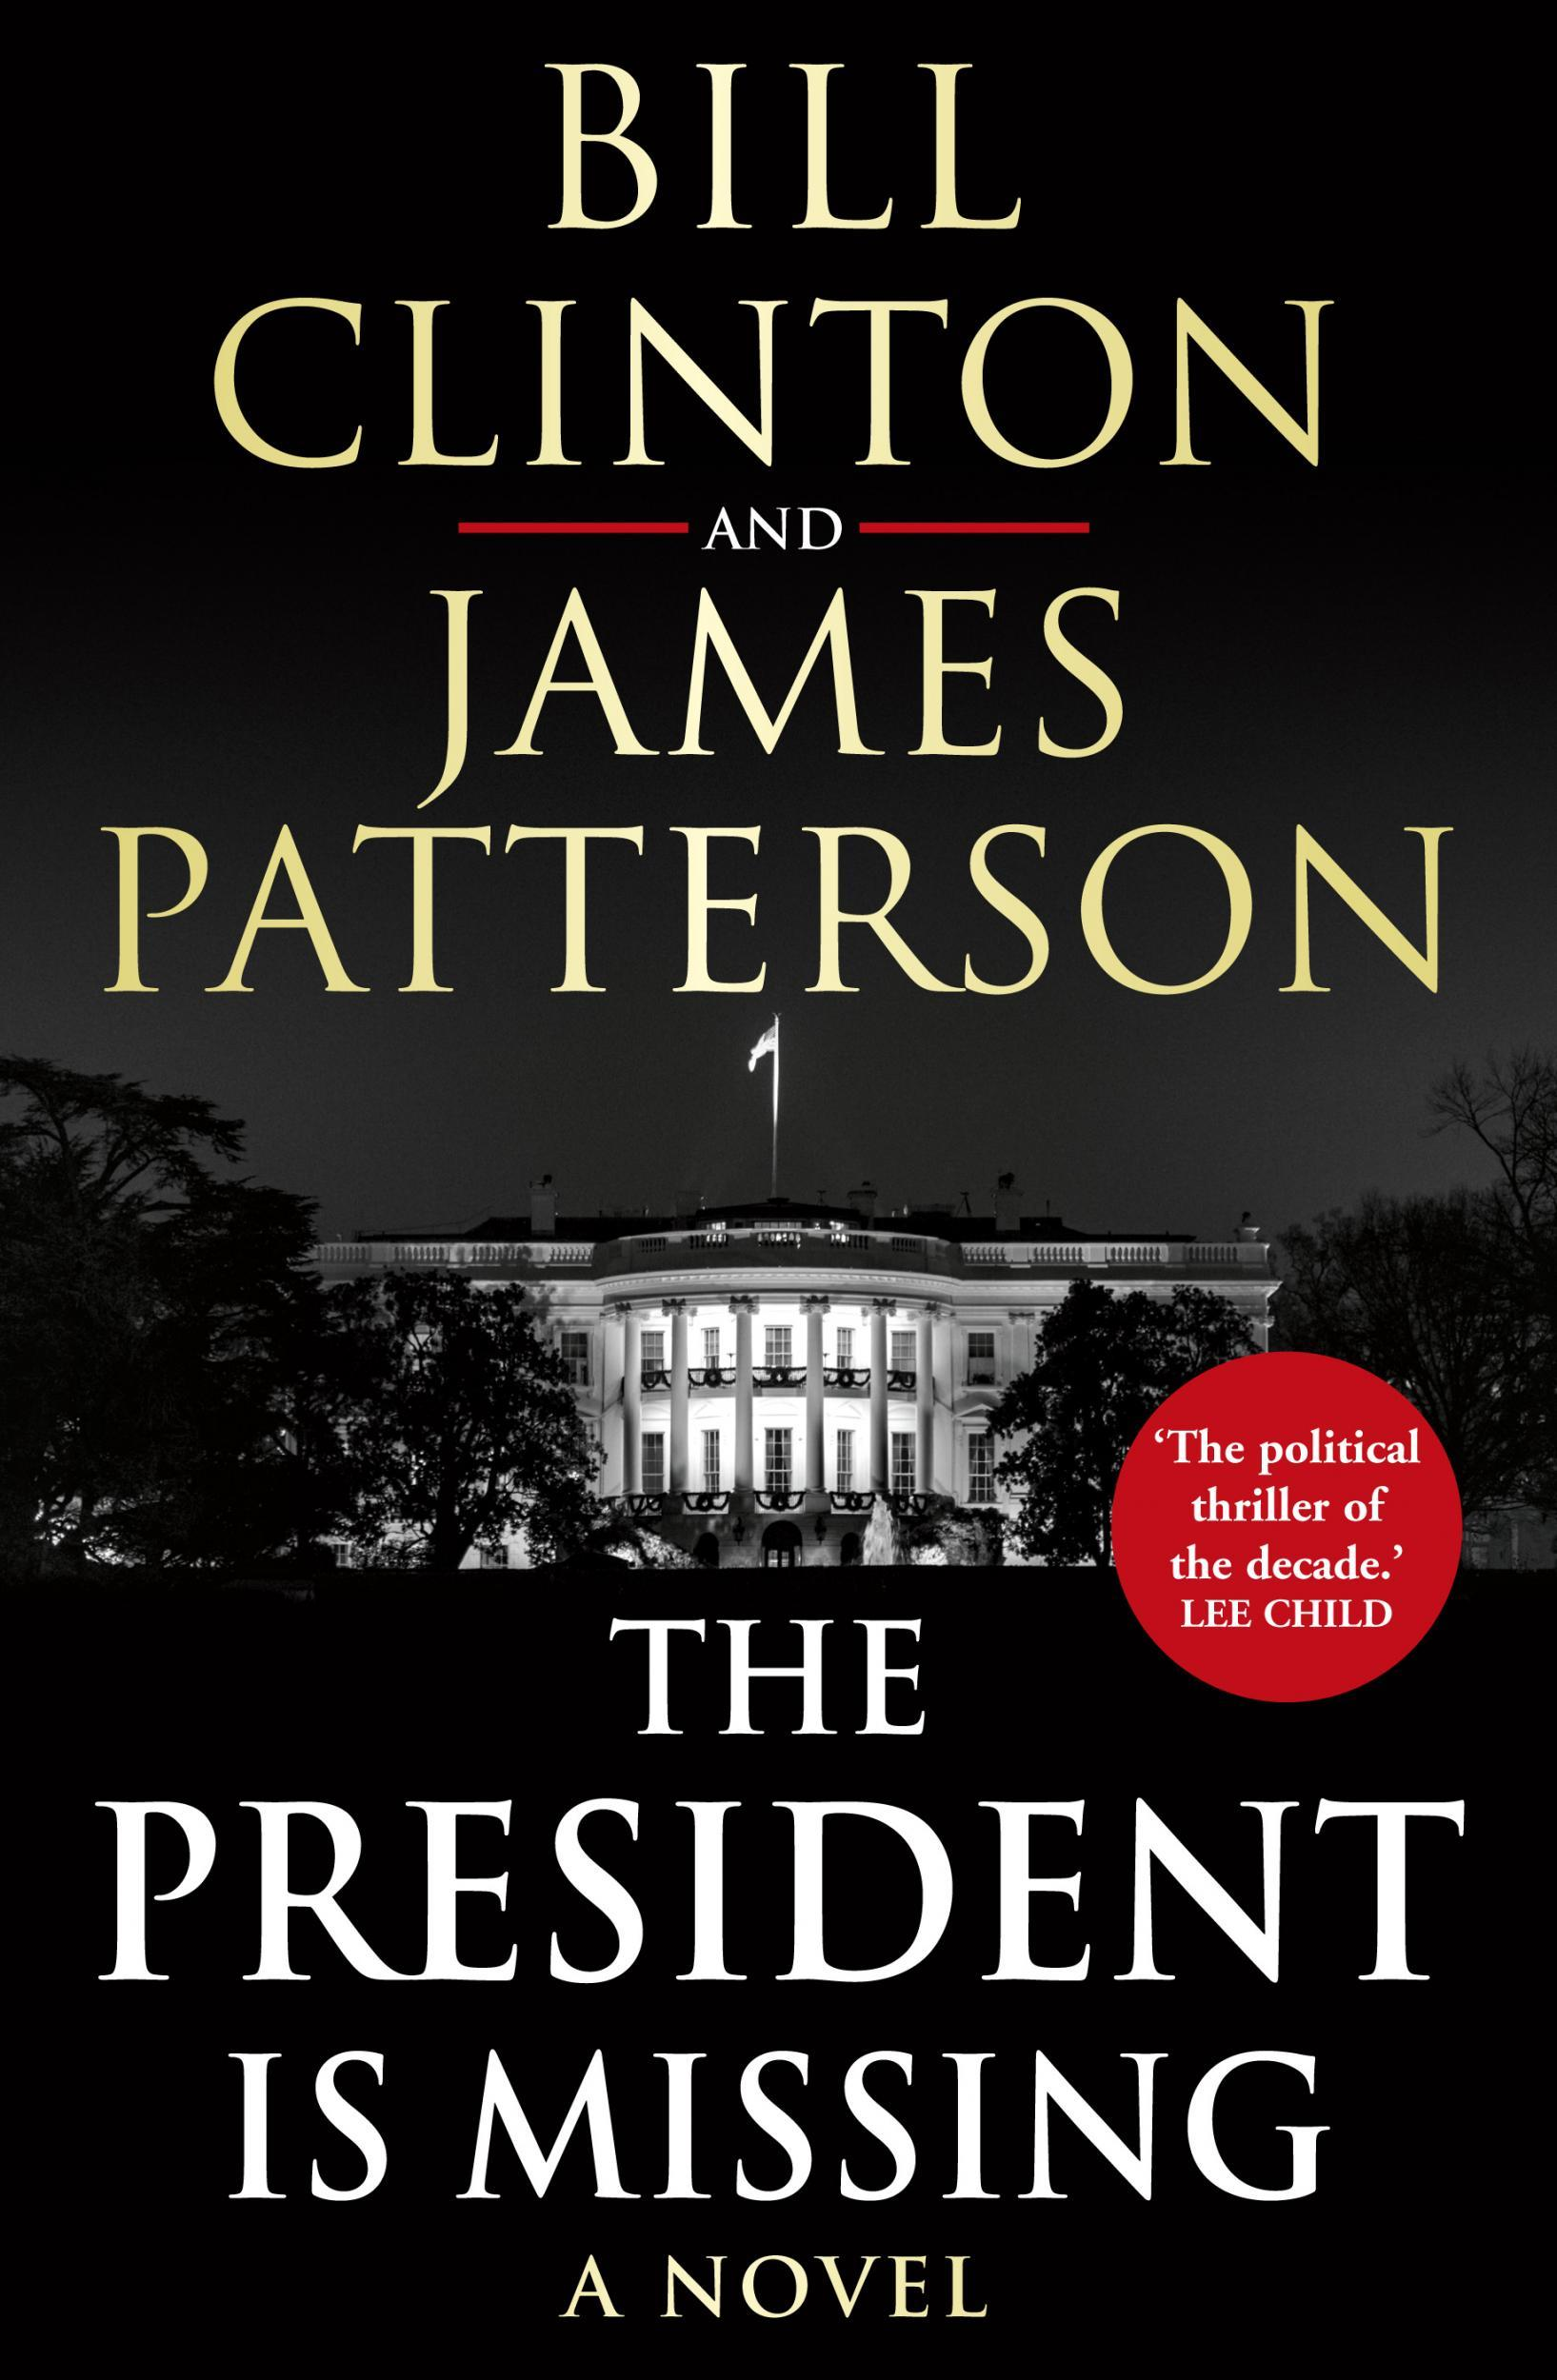 Bill Clintin and James Patterson - The President is Missing - A Novel - The political Thriller of the decade. Lee Child.